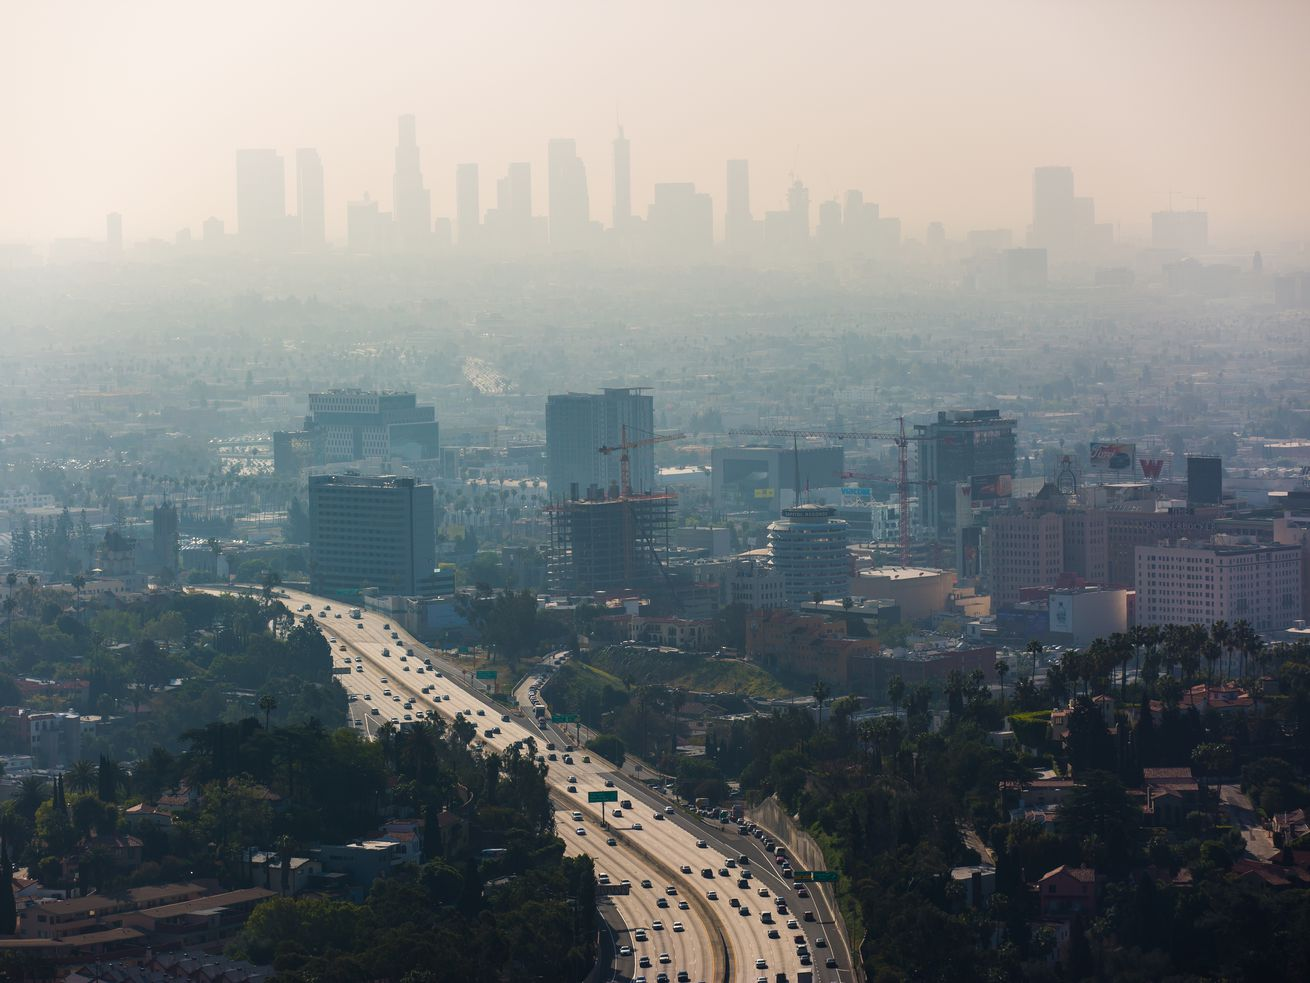 The law was passed in 1970, amid concerns about smog in Los Angeles and other California cities.